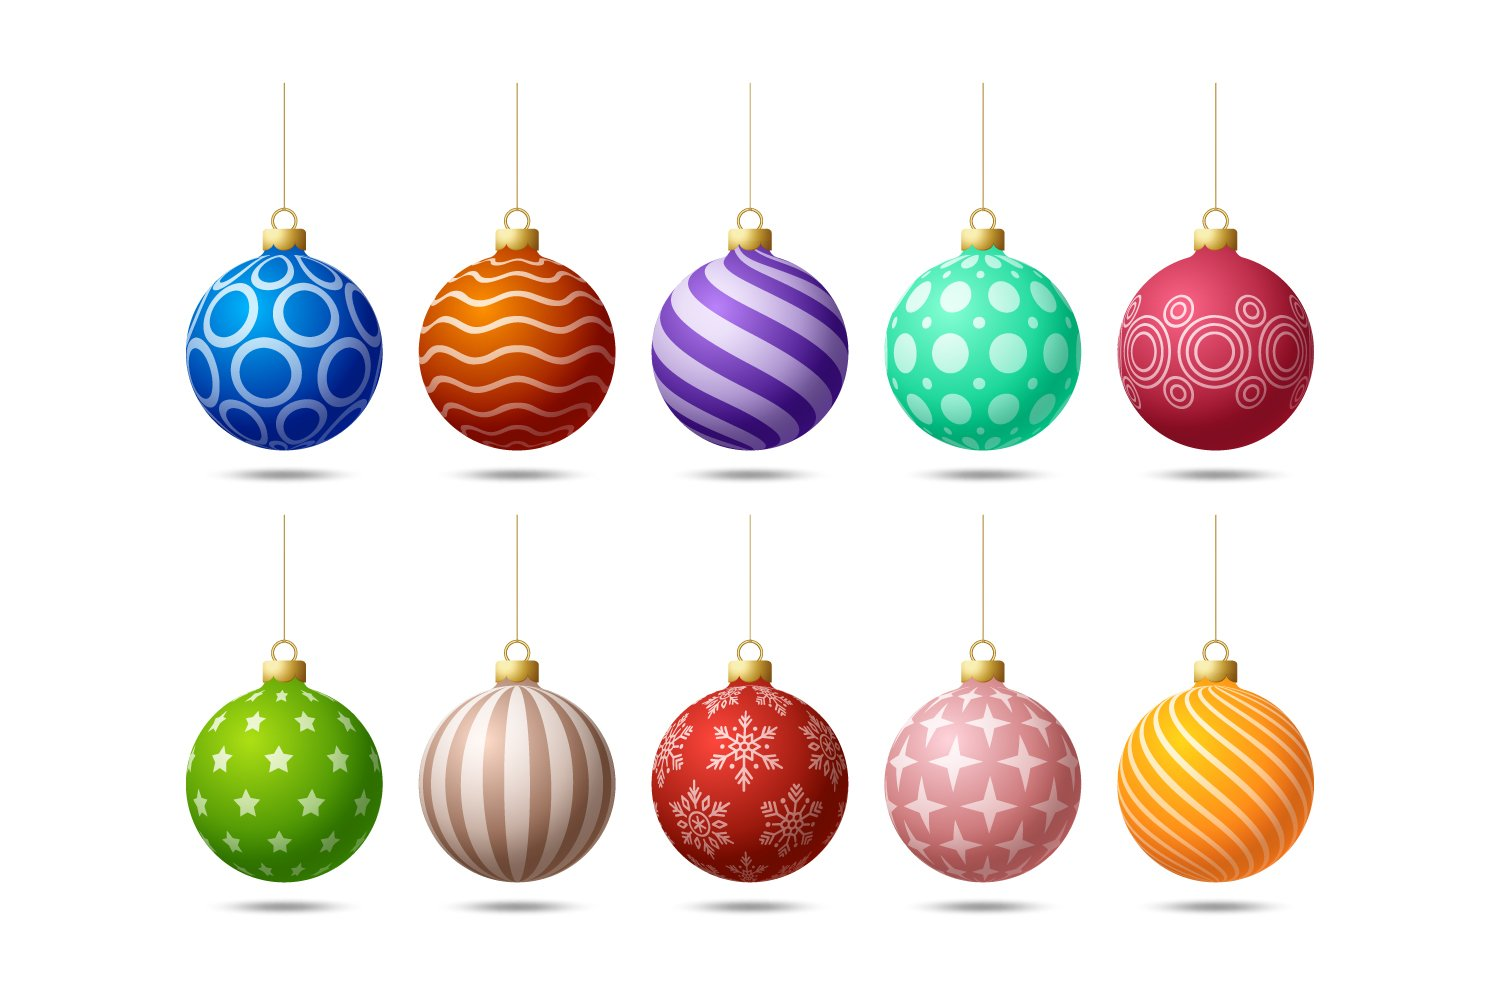 Round Christmas tree toys with multi-colored prints.